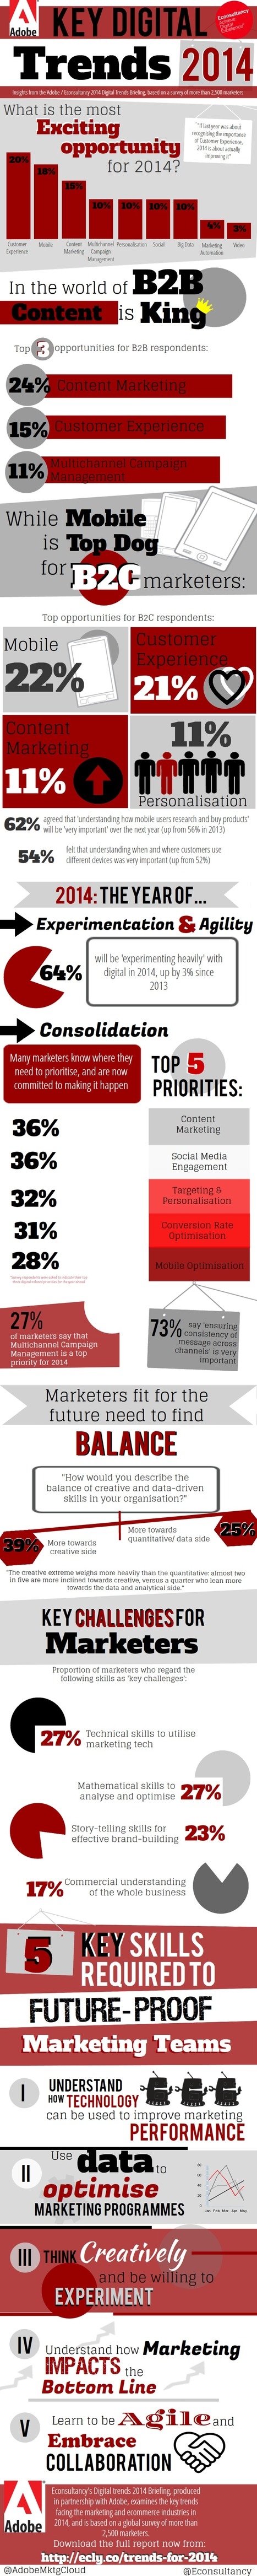 Customer experience is the most exciting opportunity for marketers [infographic] - Econsultancy | #TheMarketingTechAlert | Experience Economy | Scoop.it